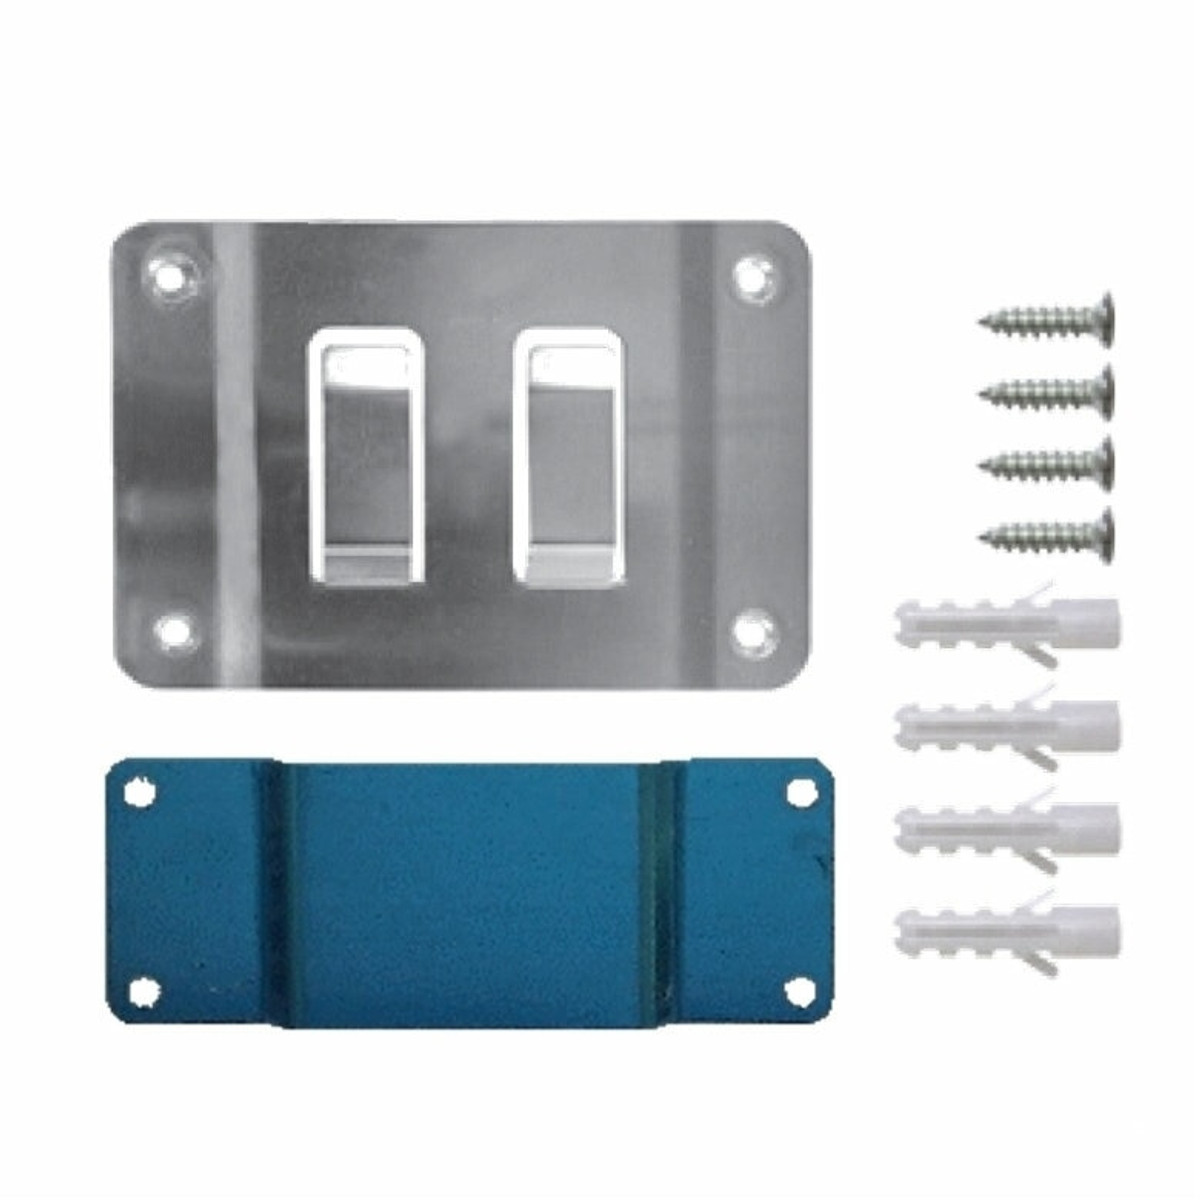 Wall Mount for Panel Antennas - 901143